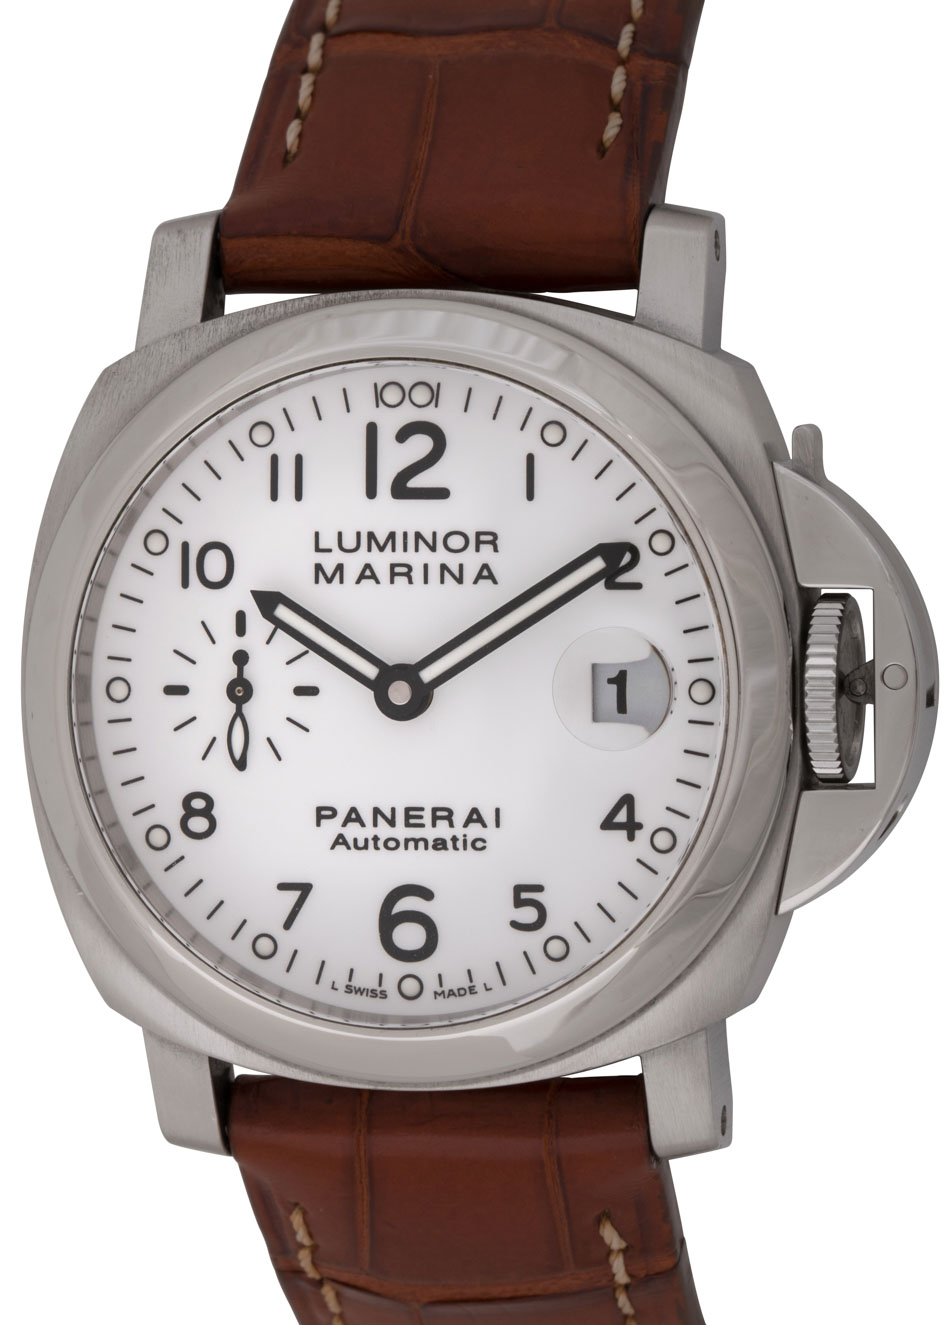 panerai luminor marina pam 49 bernard watch. Black Bedroom Furniture Sets. Home Design Ideas